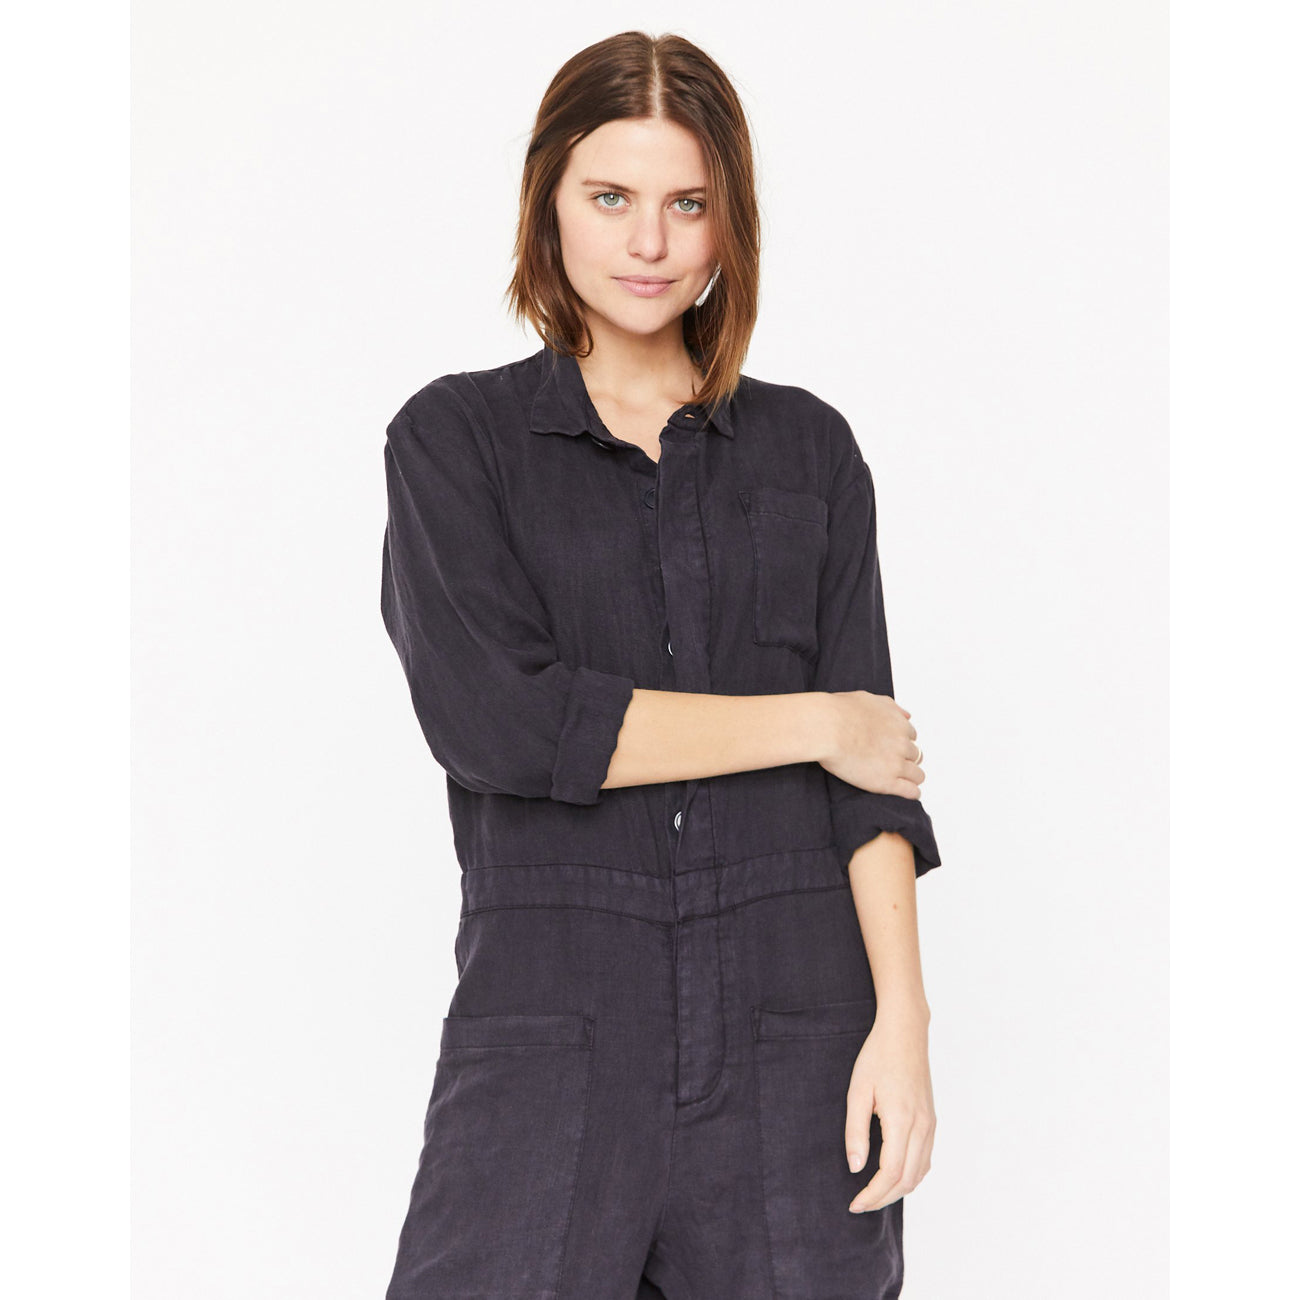 Esby Aaron Flight Suit in Midnight